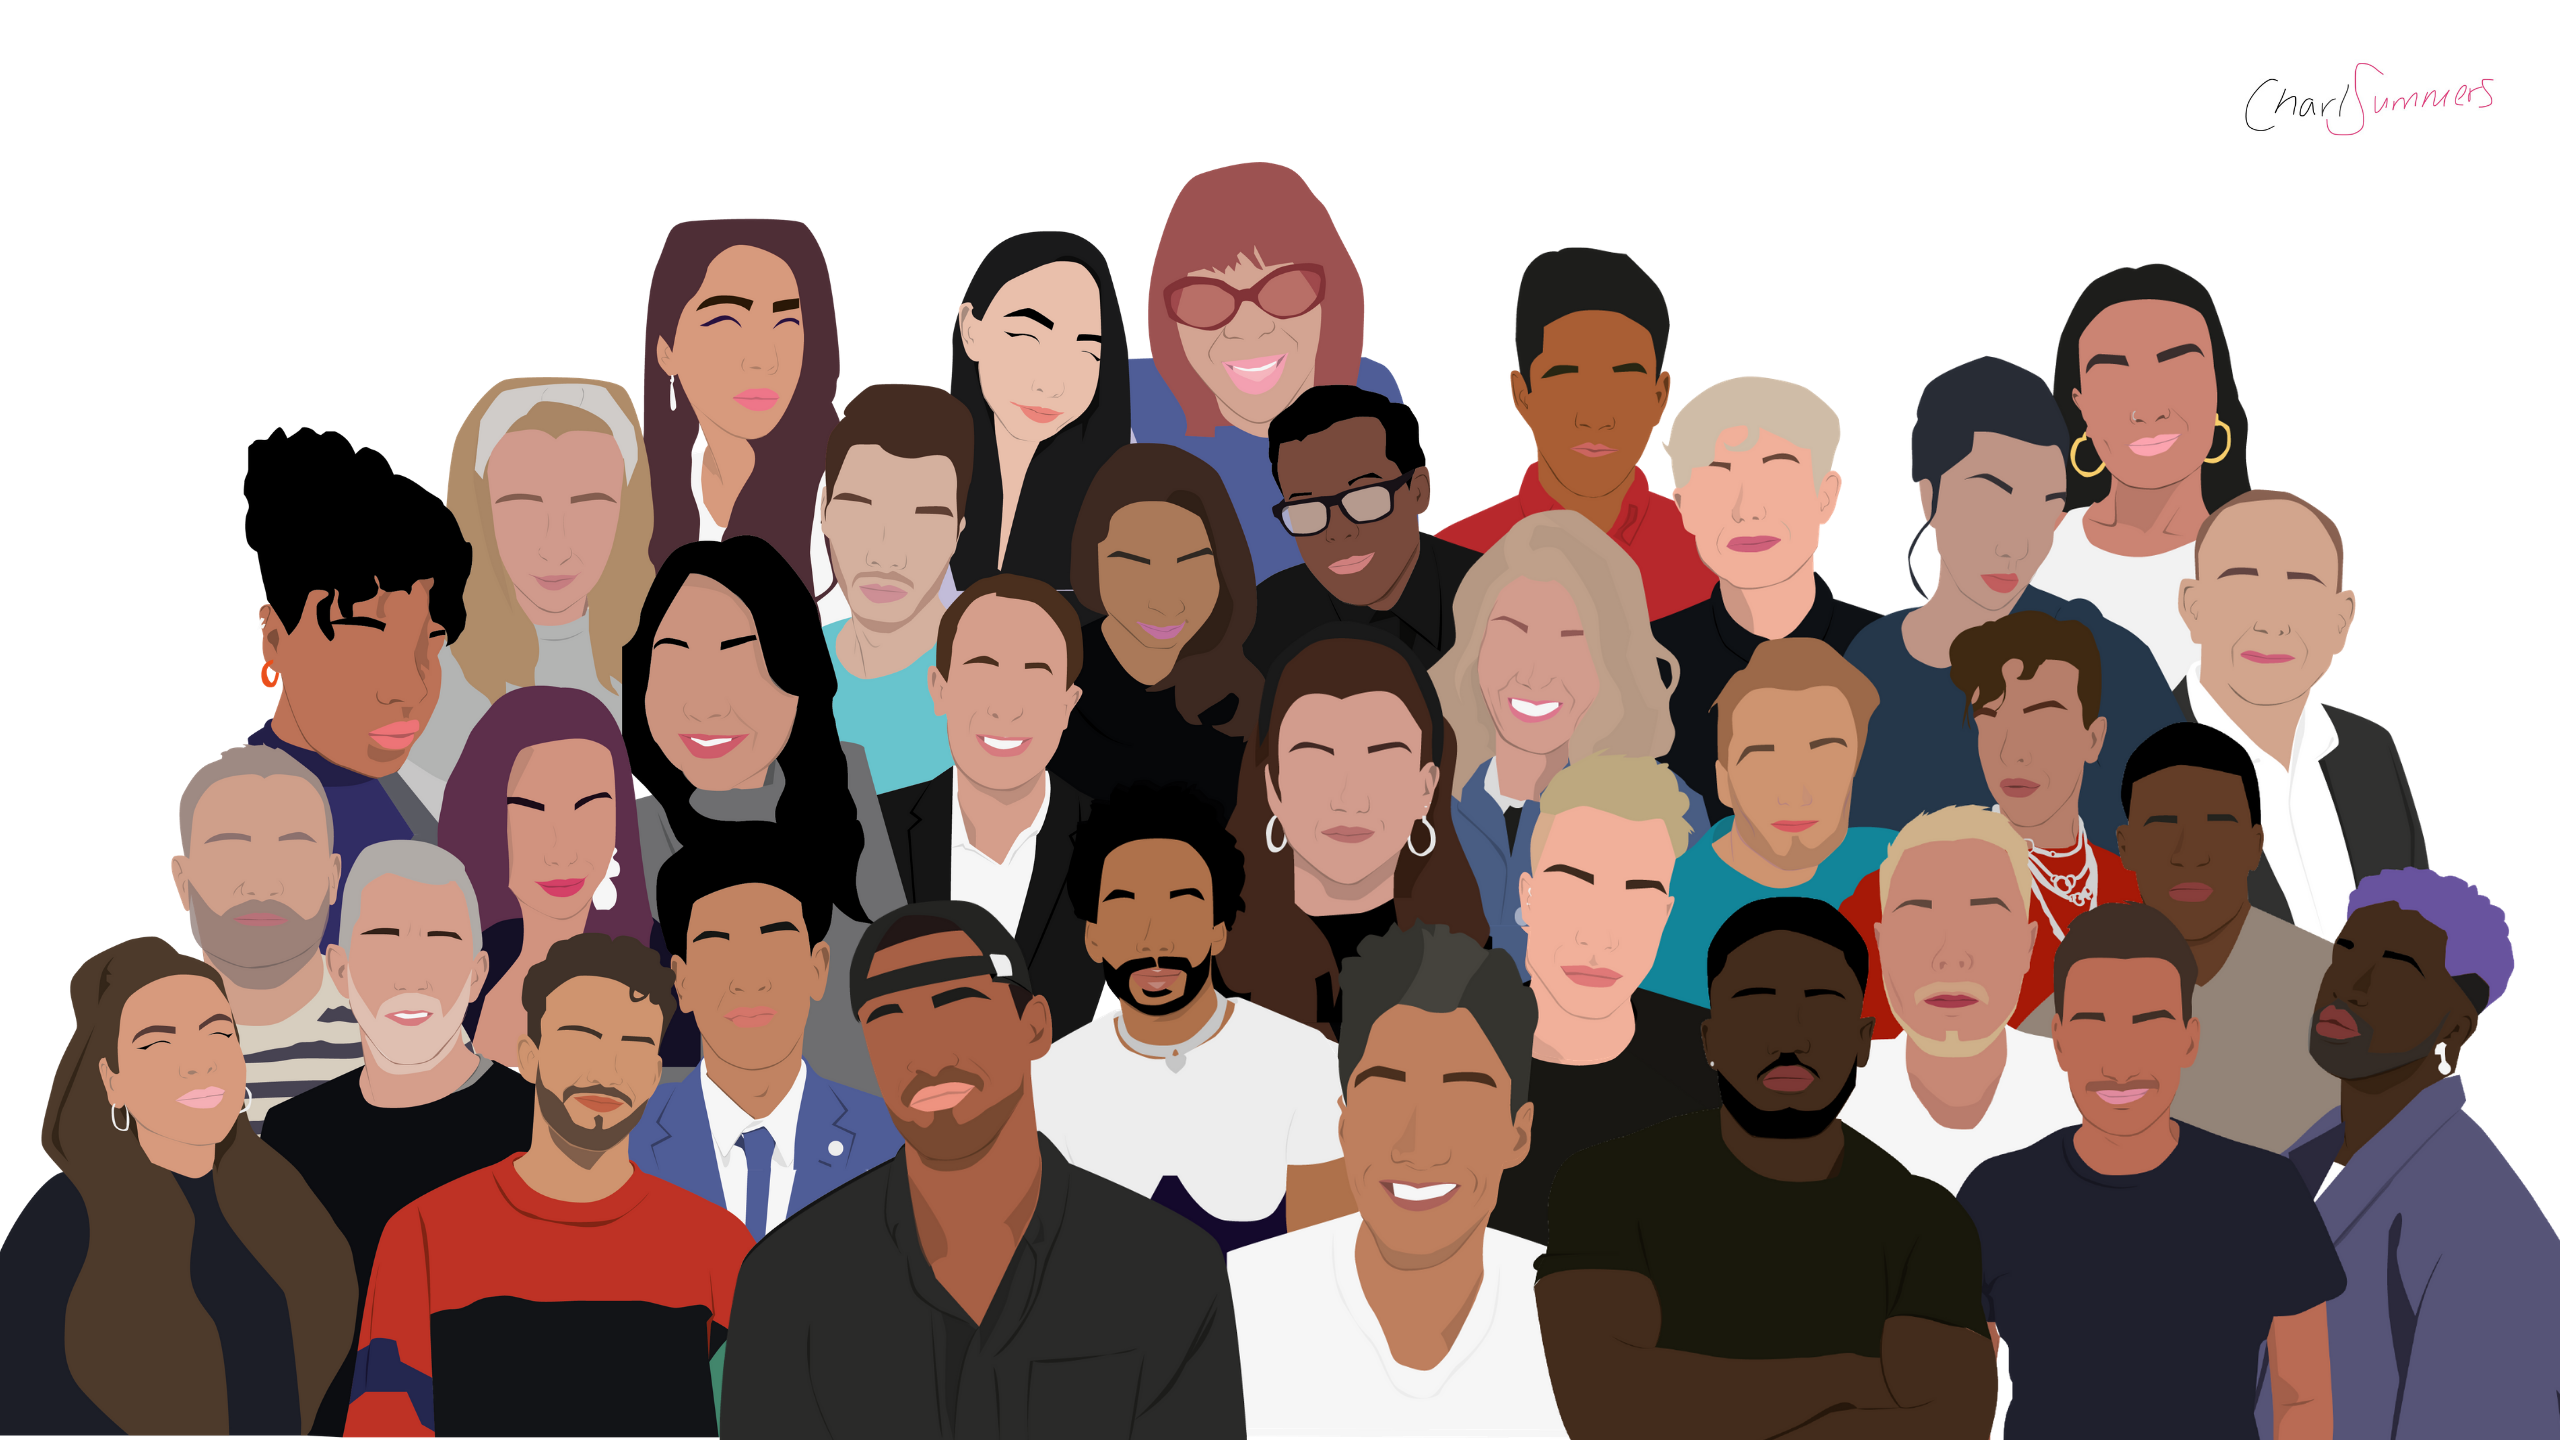 Marketing with Diversity and Educating Brands